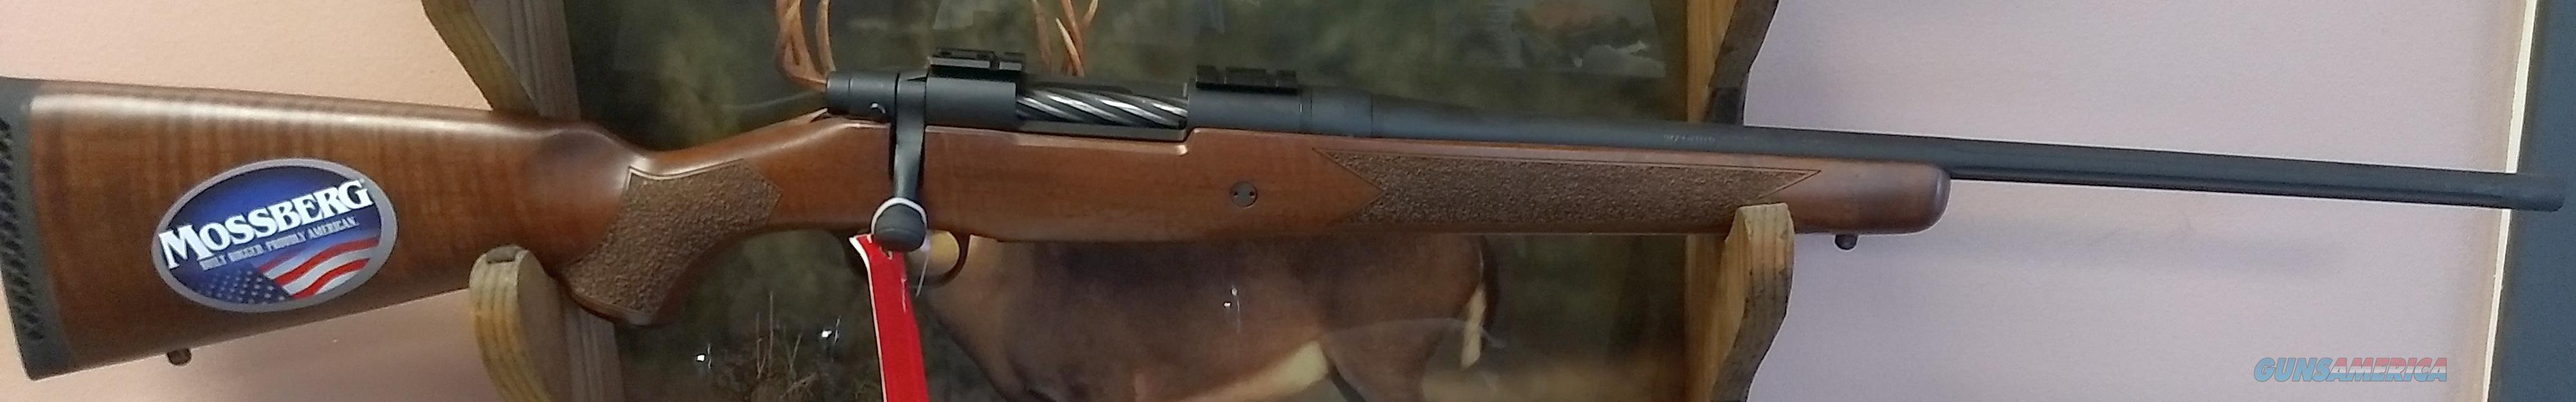 Mossberg Patriot .243 Win. Bolt Action W/Walnut Stock   Guns > Rifles > Mossberg Rifles > Patriot